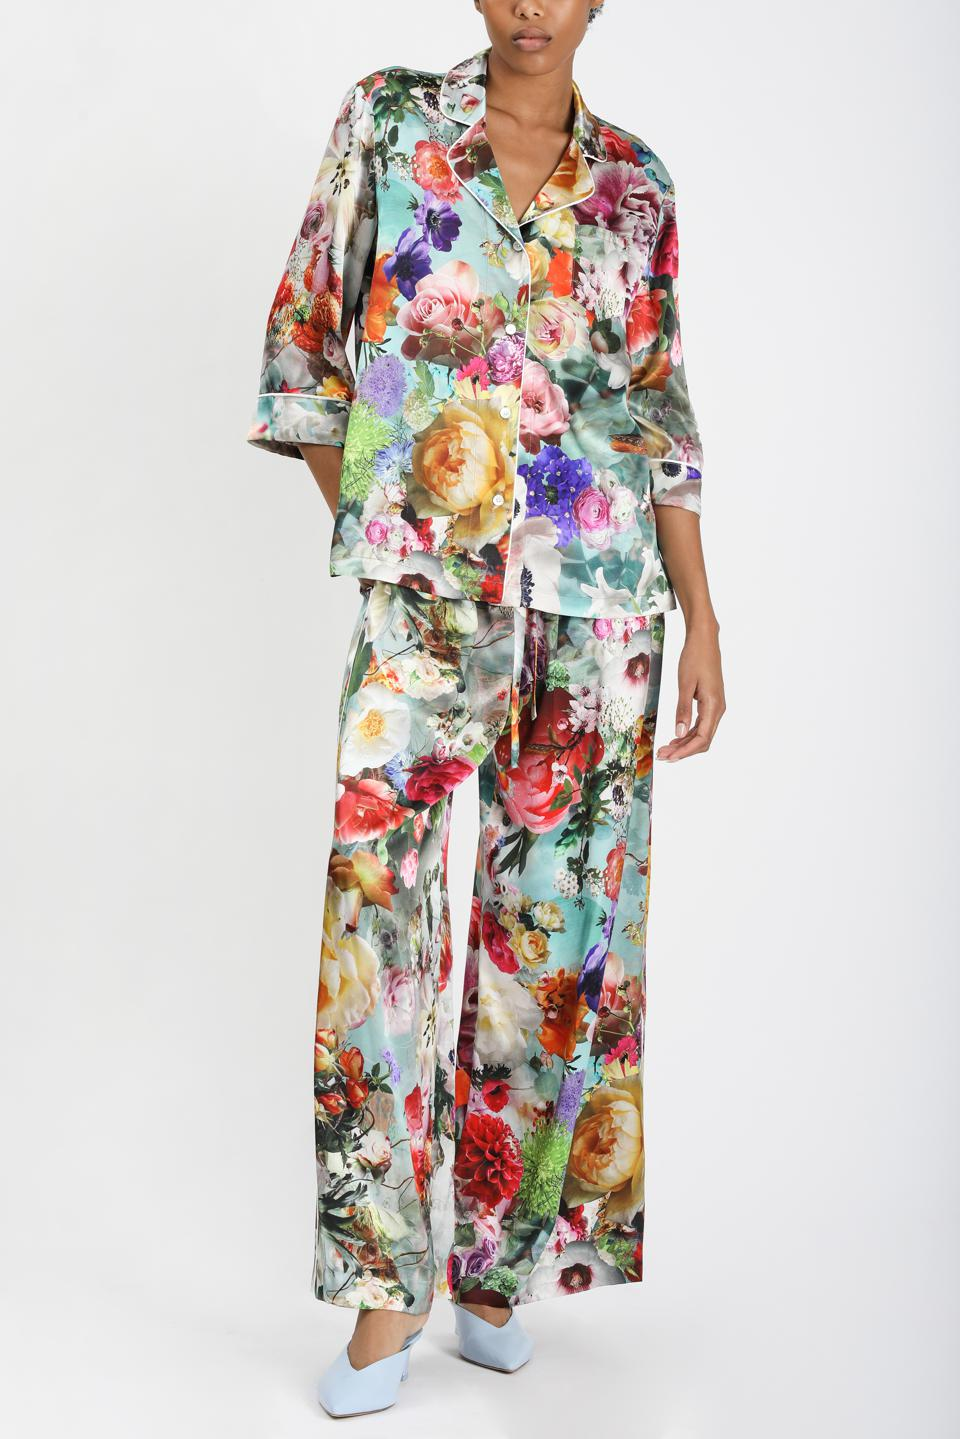 Dress up to stay in with blooming and artful floral print silk sleeper set.